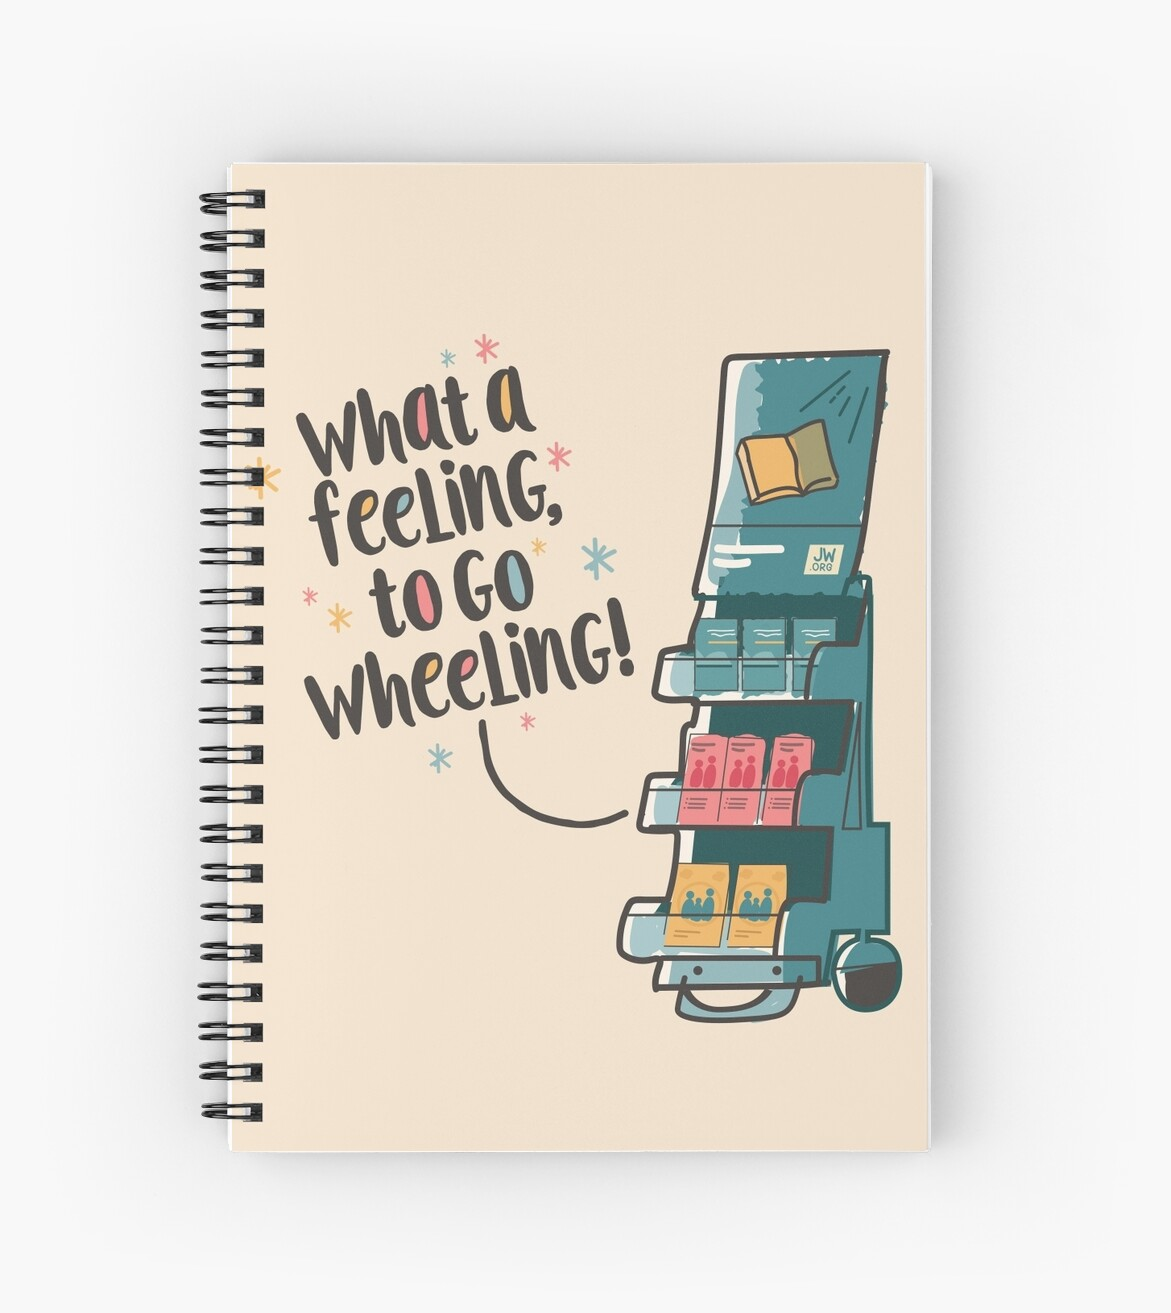 Quot What A Feeling To Go Wheeling Quot Spiral Notebooks By Jw